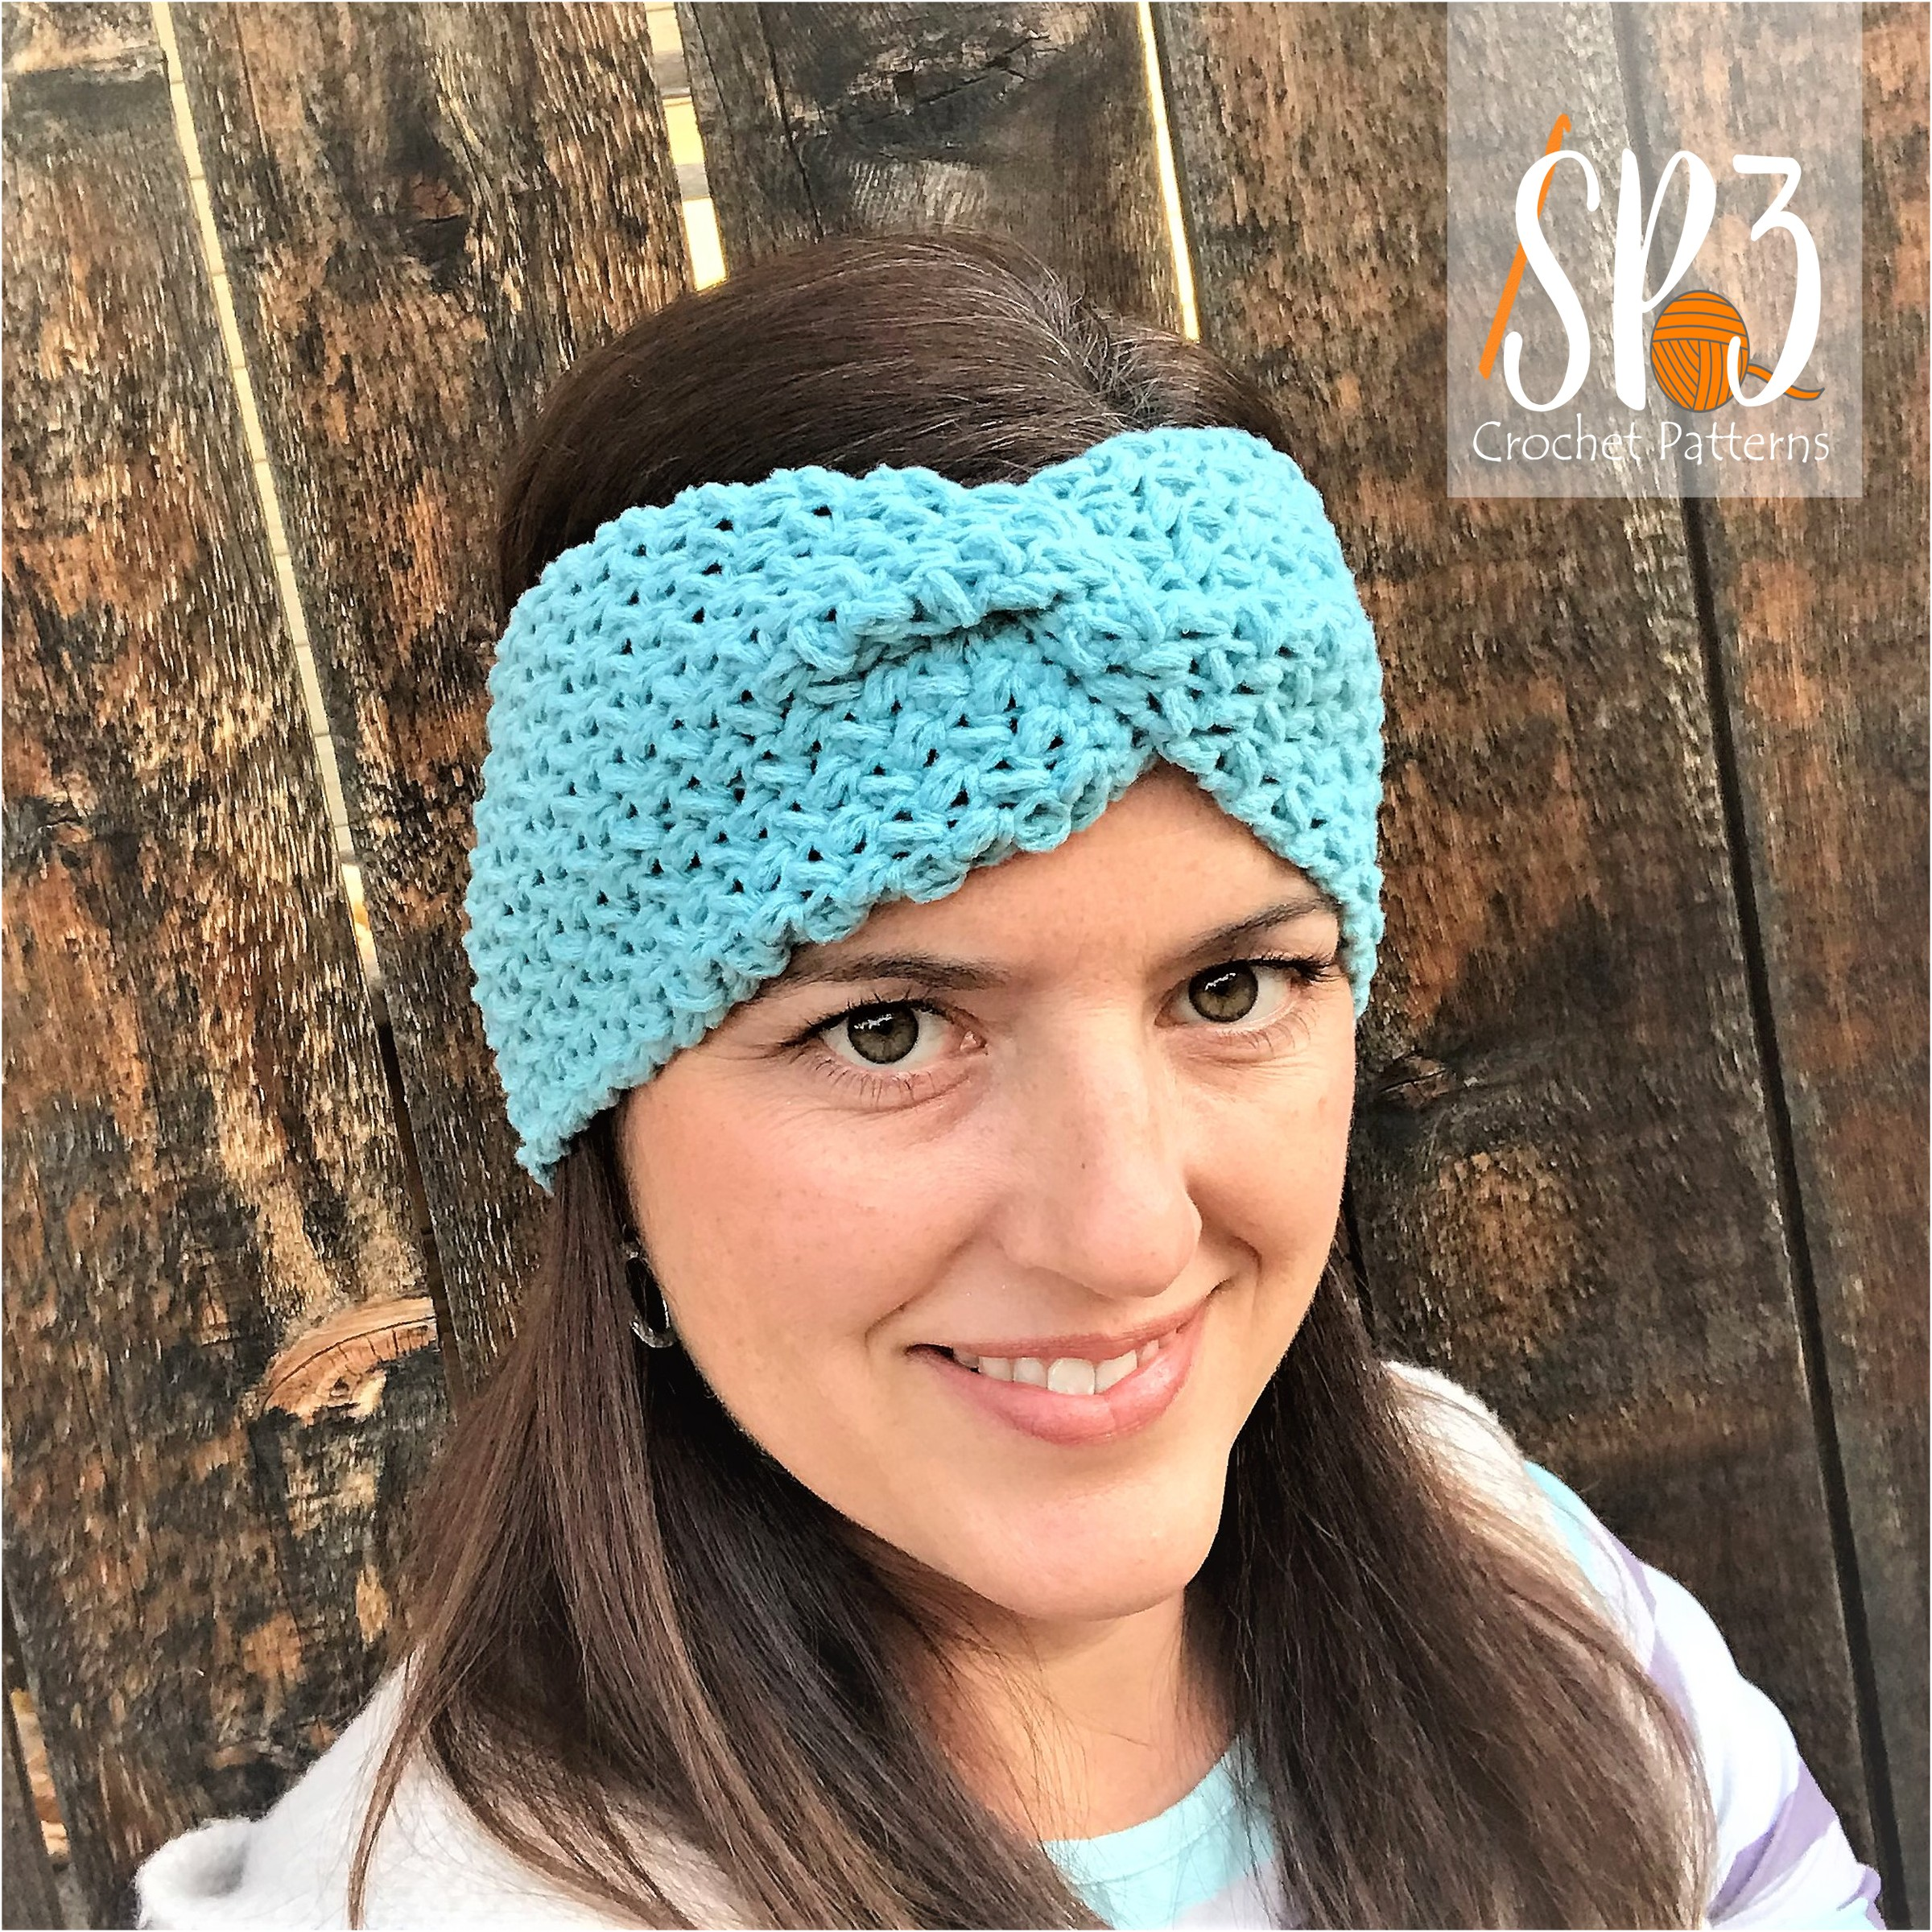 Mini Bean Stitch and Ear Warmer Instructions